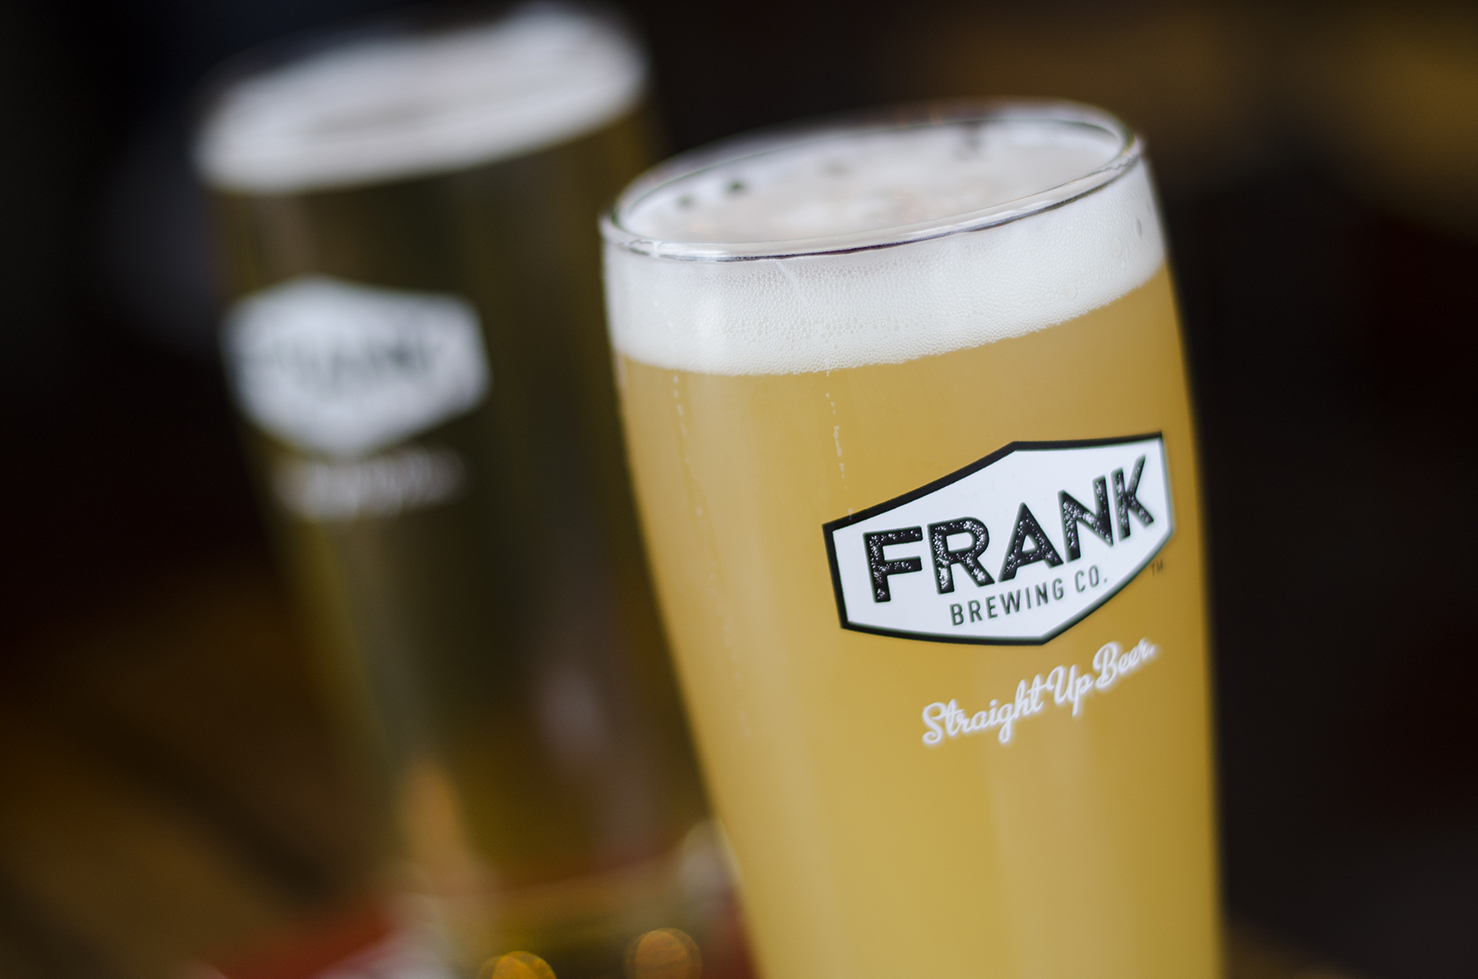 We're excited to have Frank Brewing Co. be a part of our Dinner on a Pier